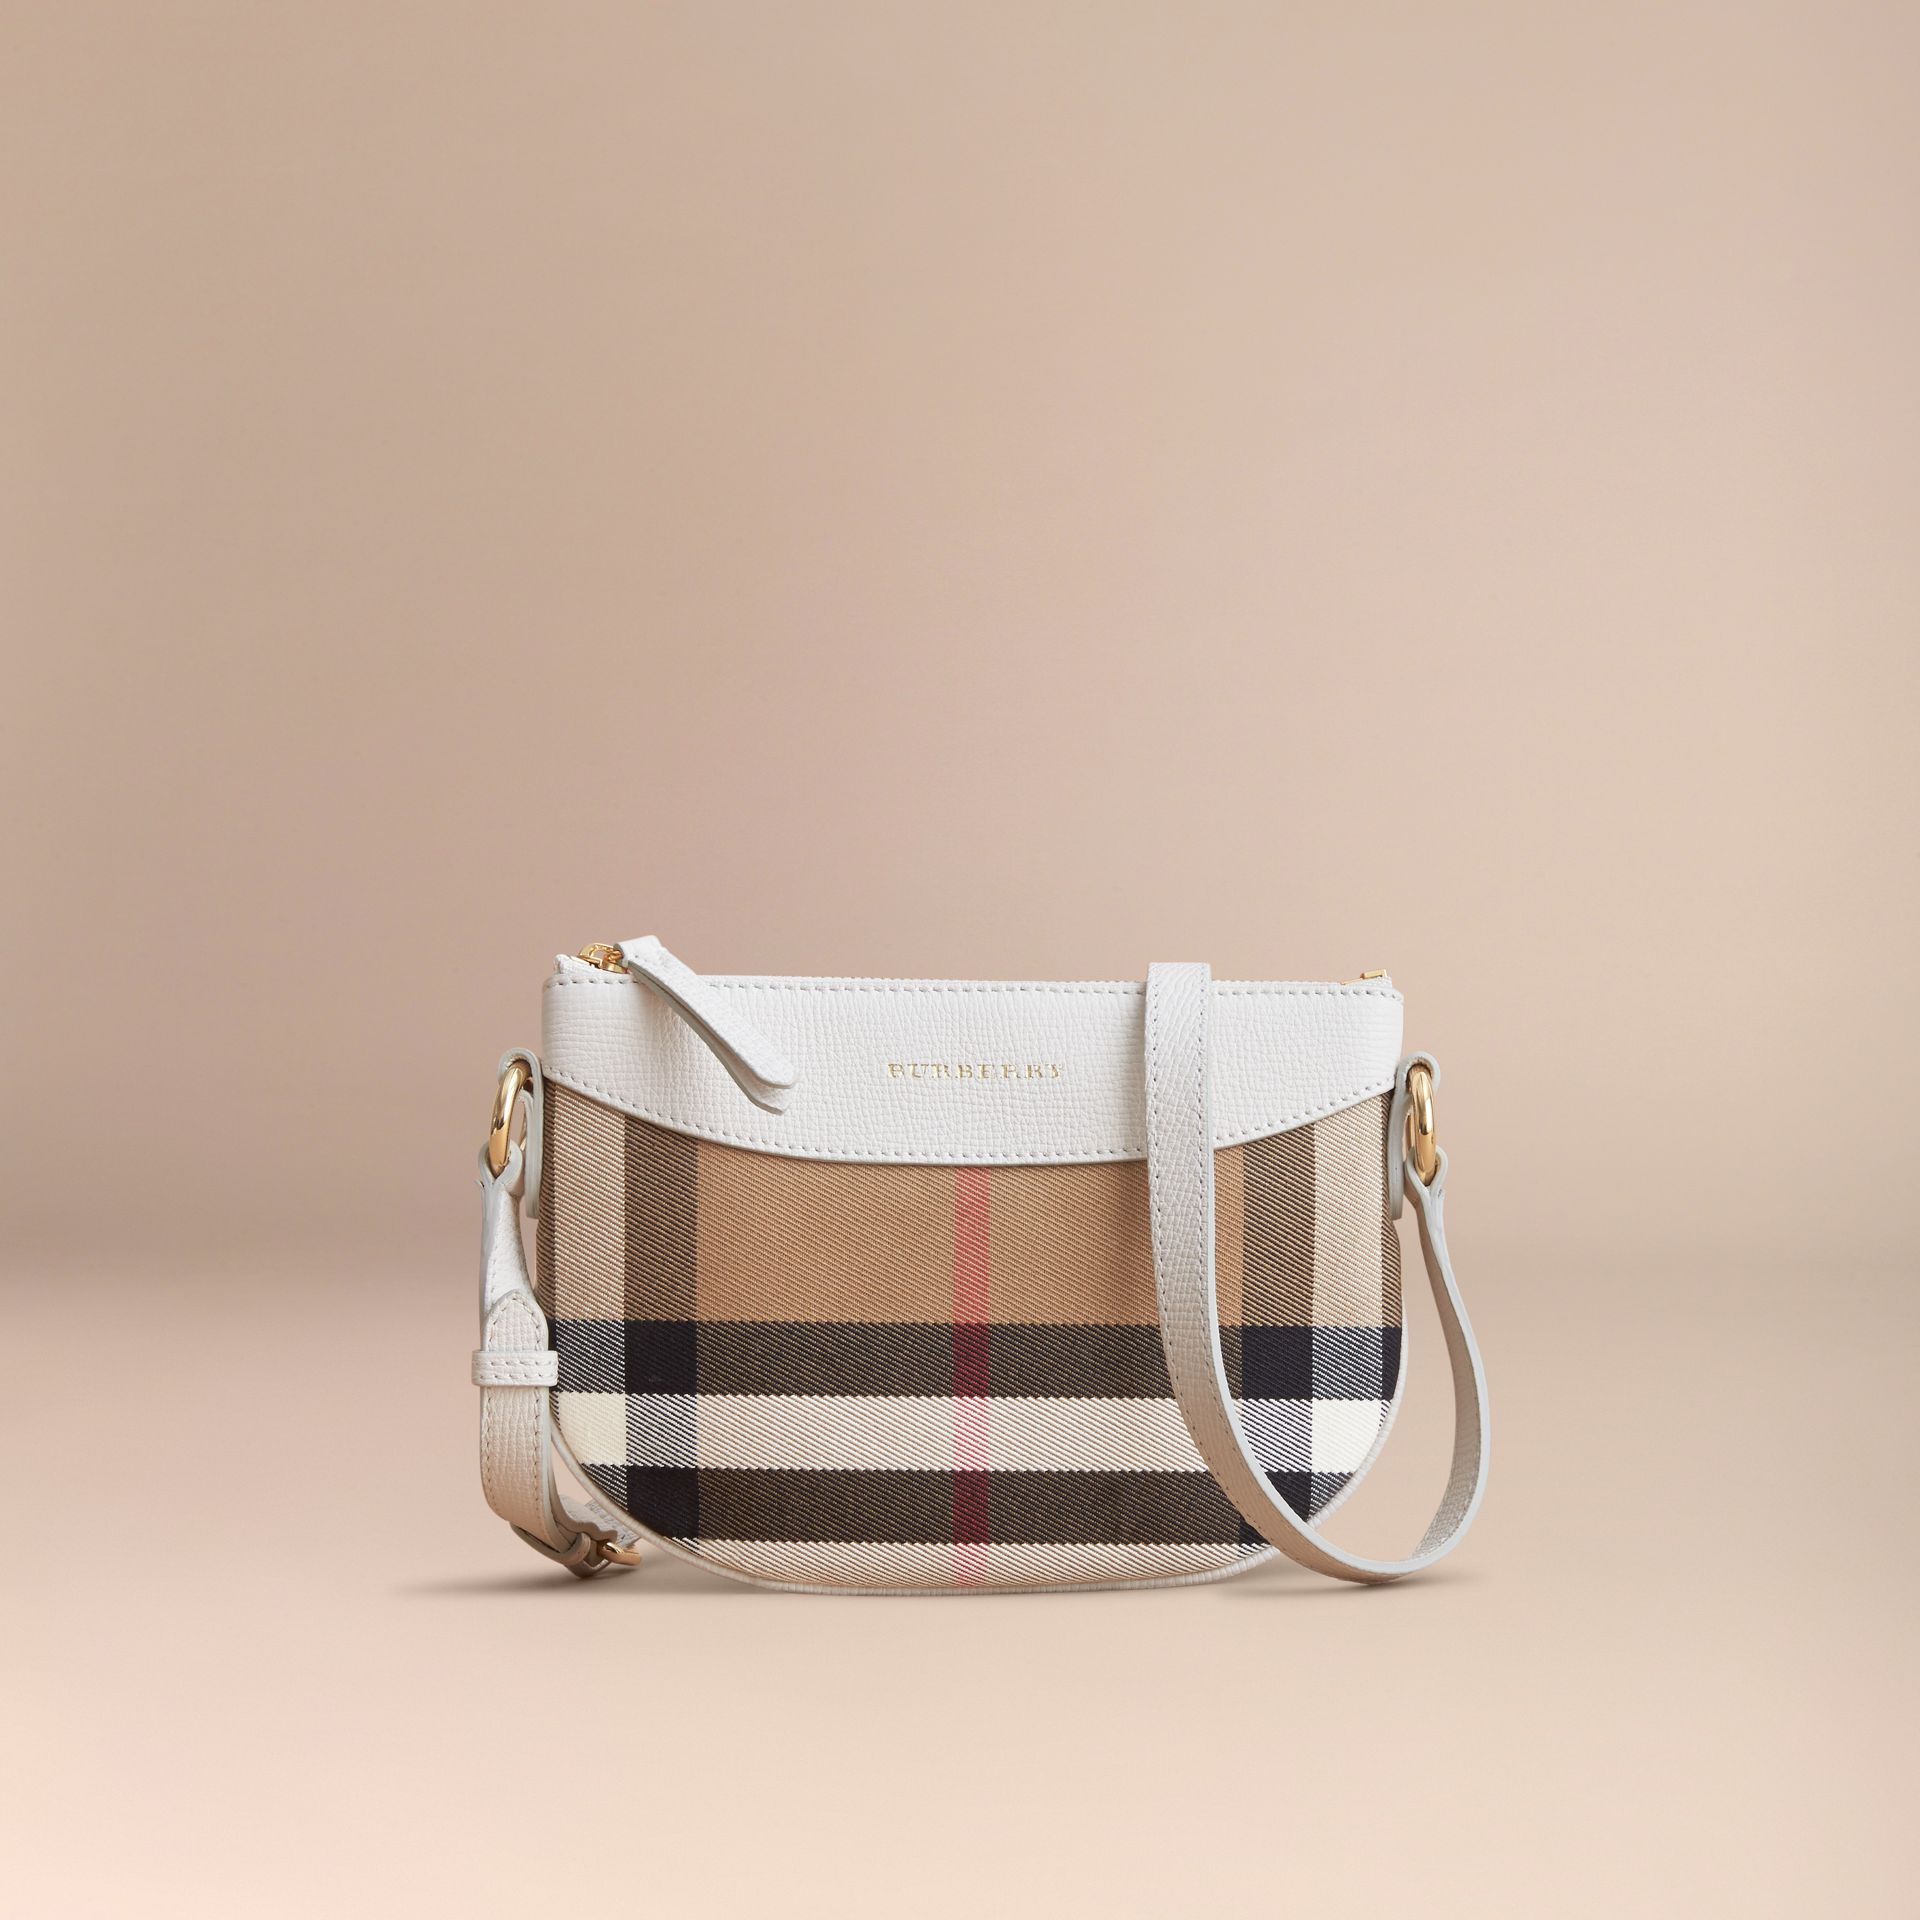 House Check and Leather Crossbody Bag in Natural | Burberry - gallery image 5